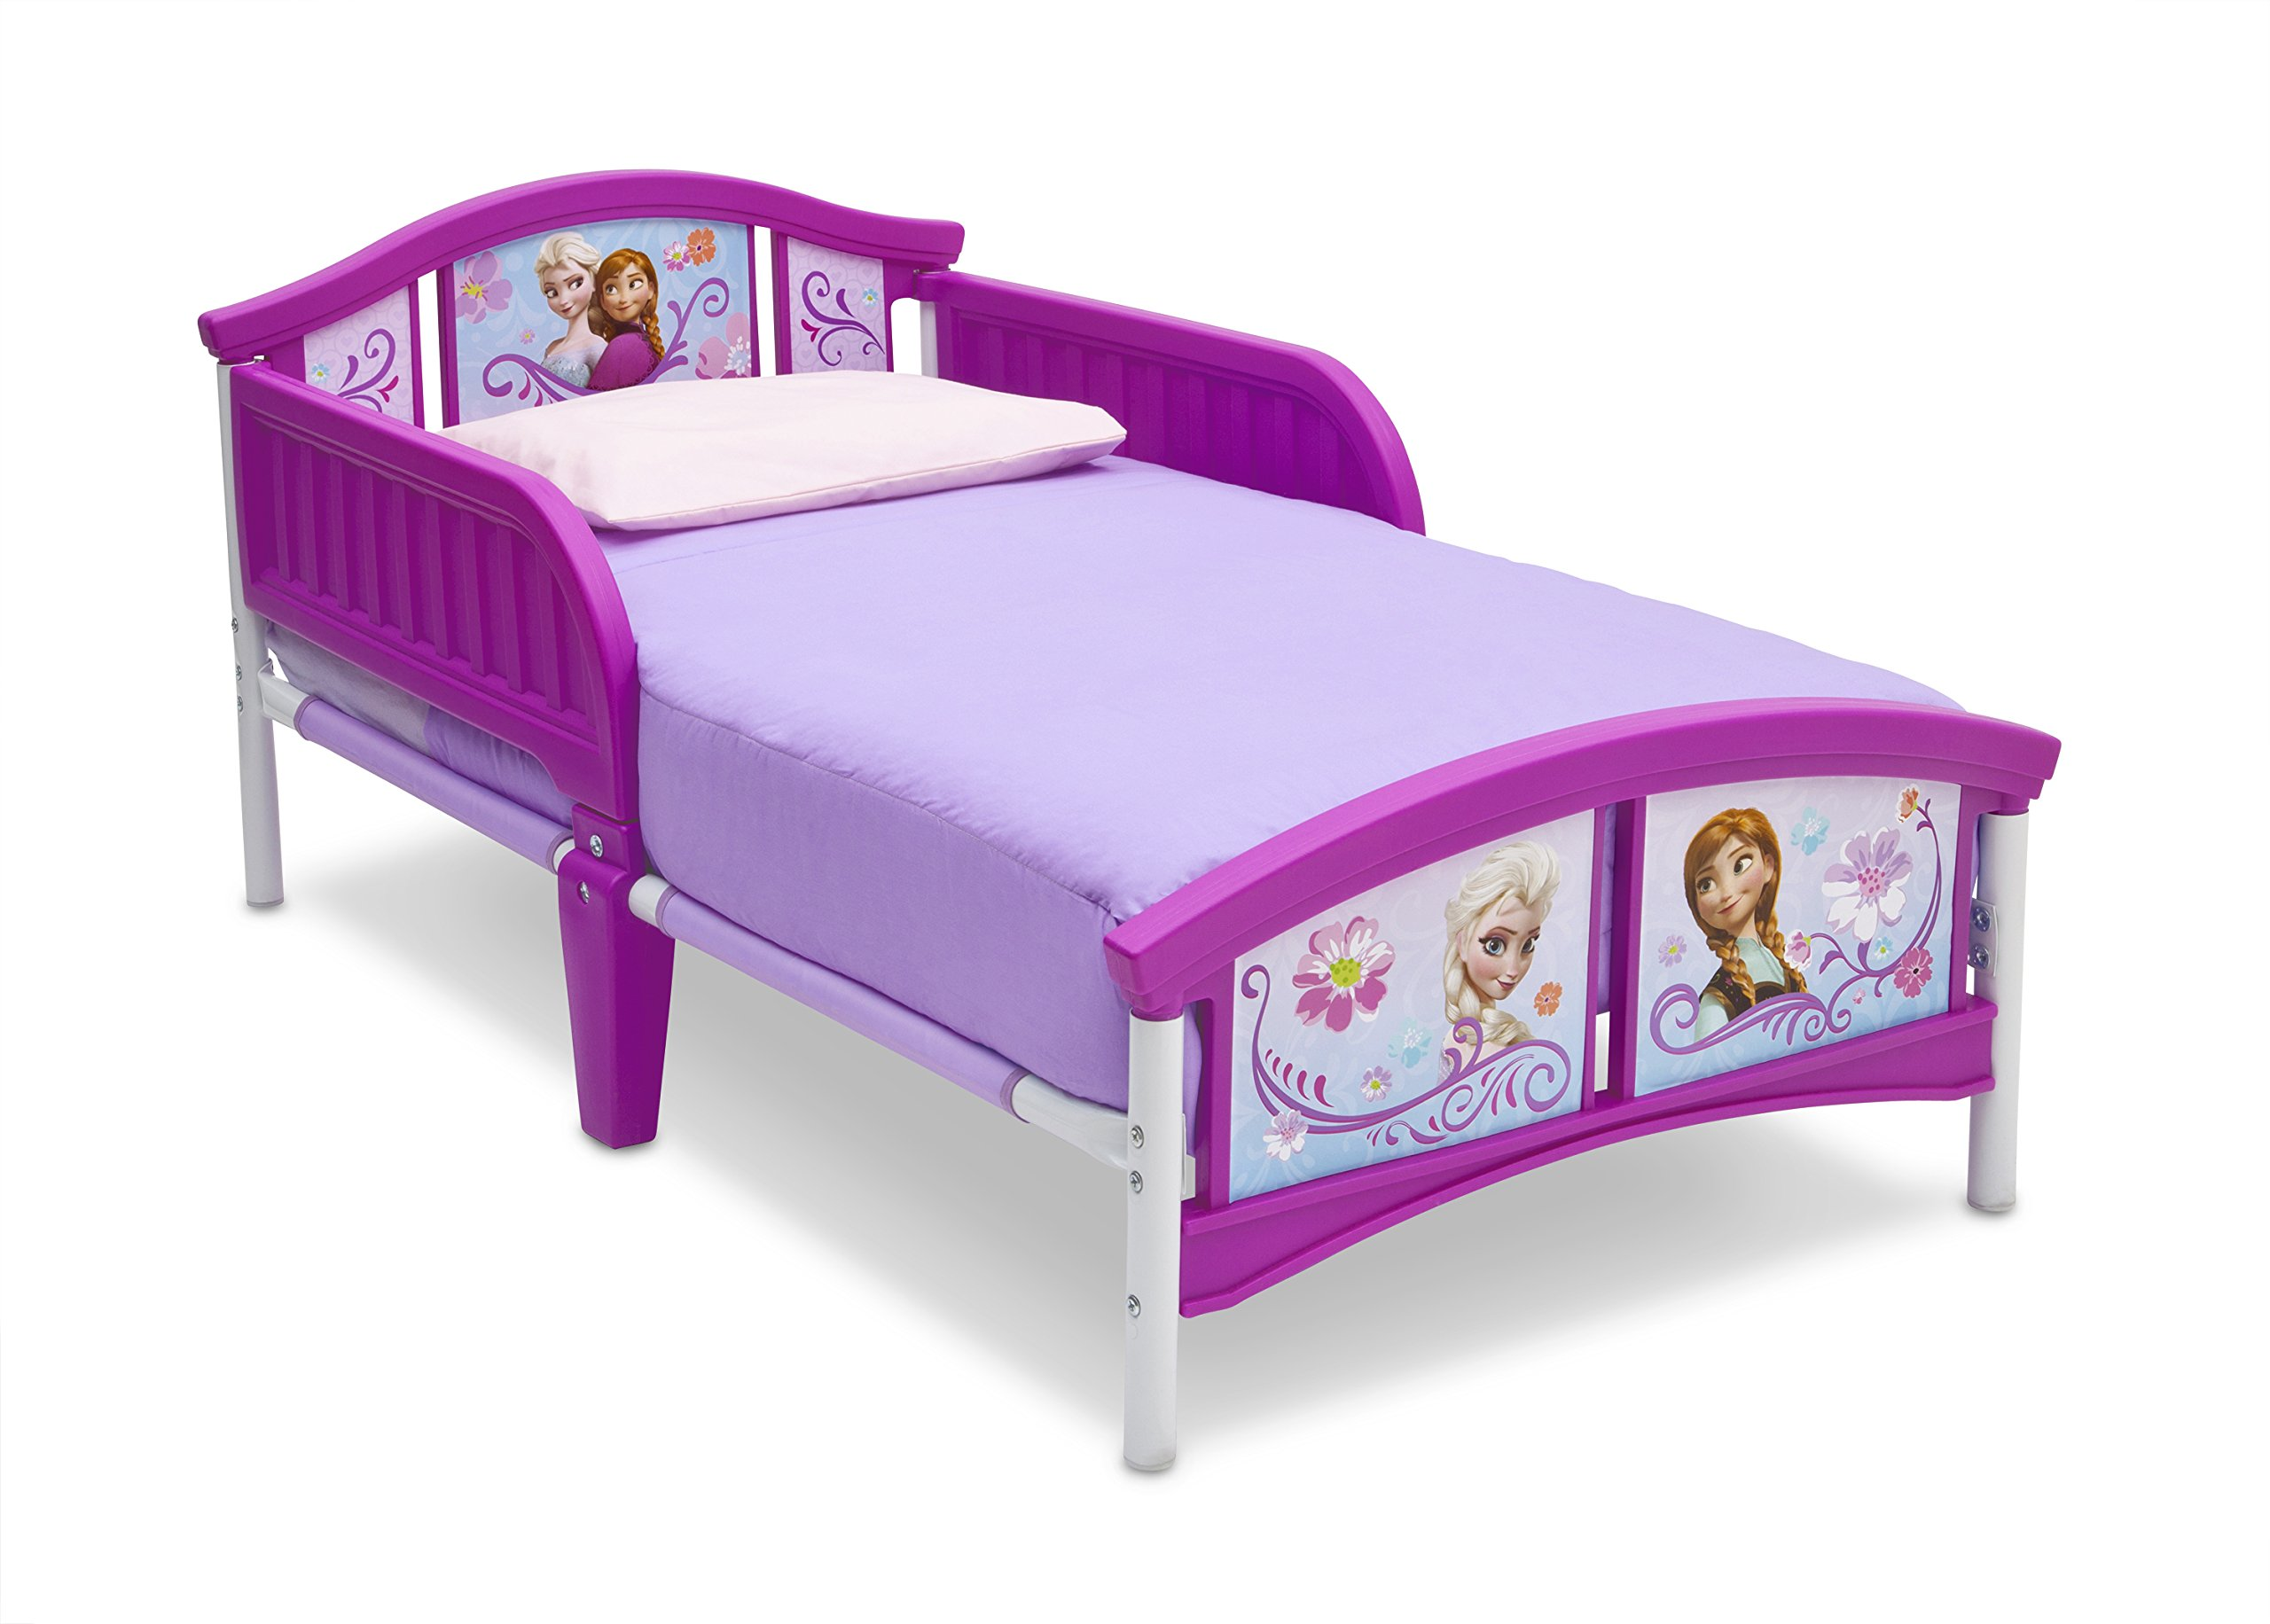 Toddler Bed For Girl Disney Frozen Canopy Kids Toddler Bed Girls Princess Anna